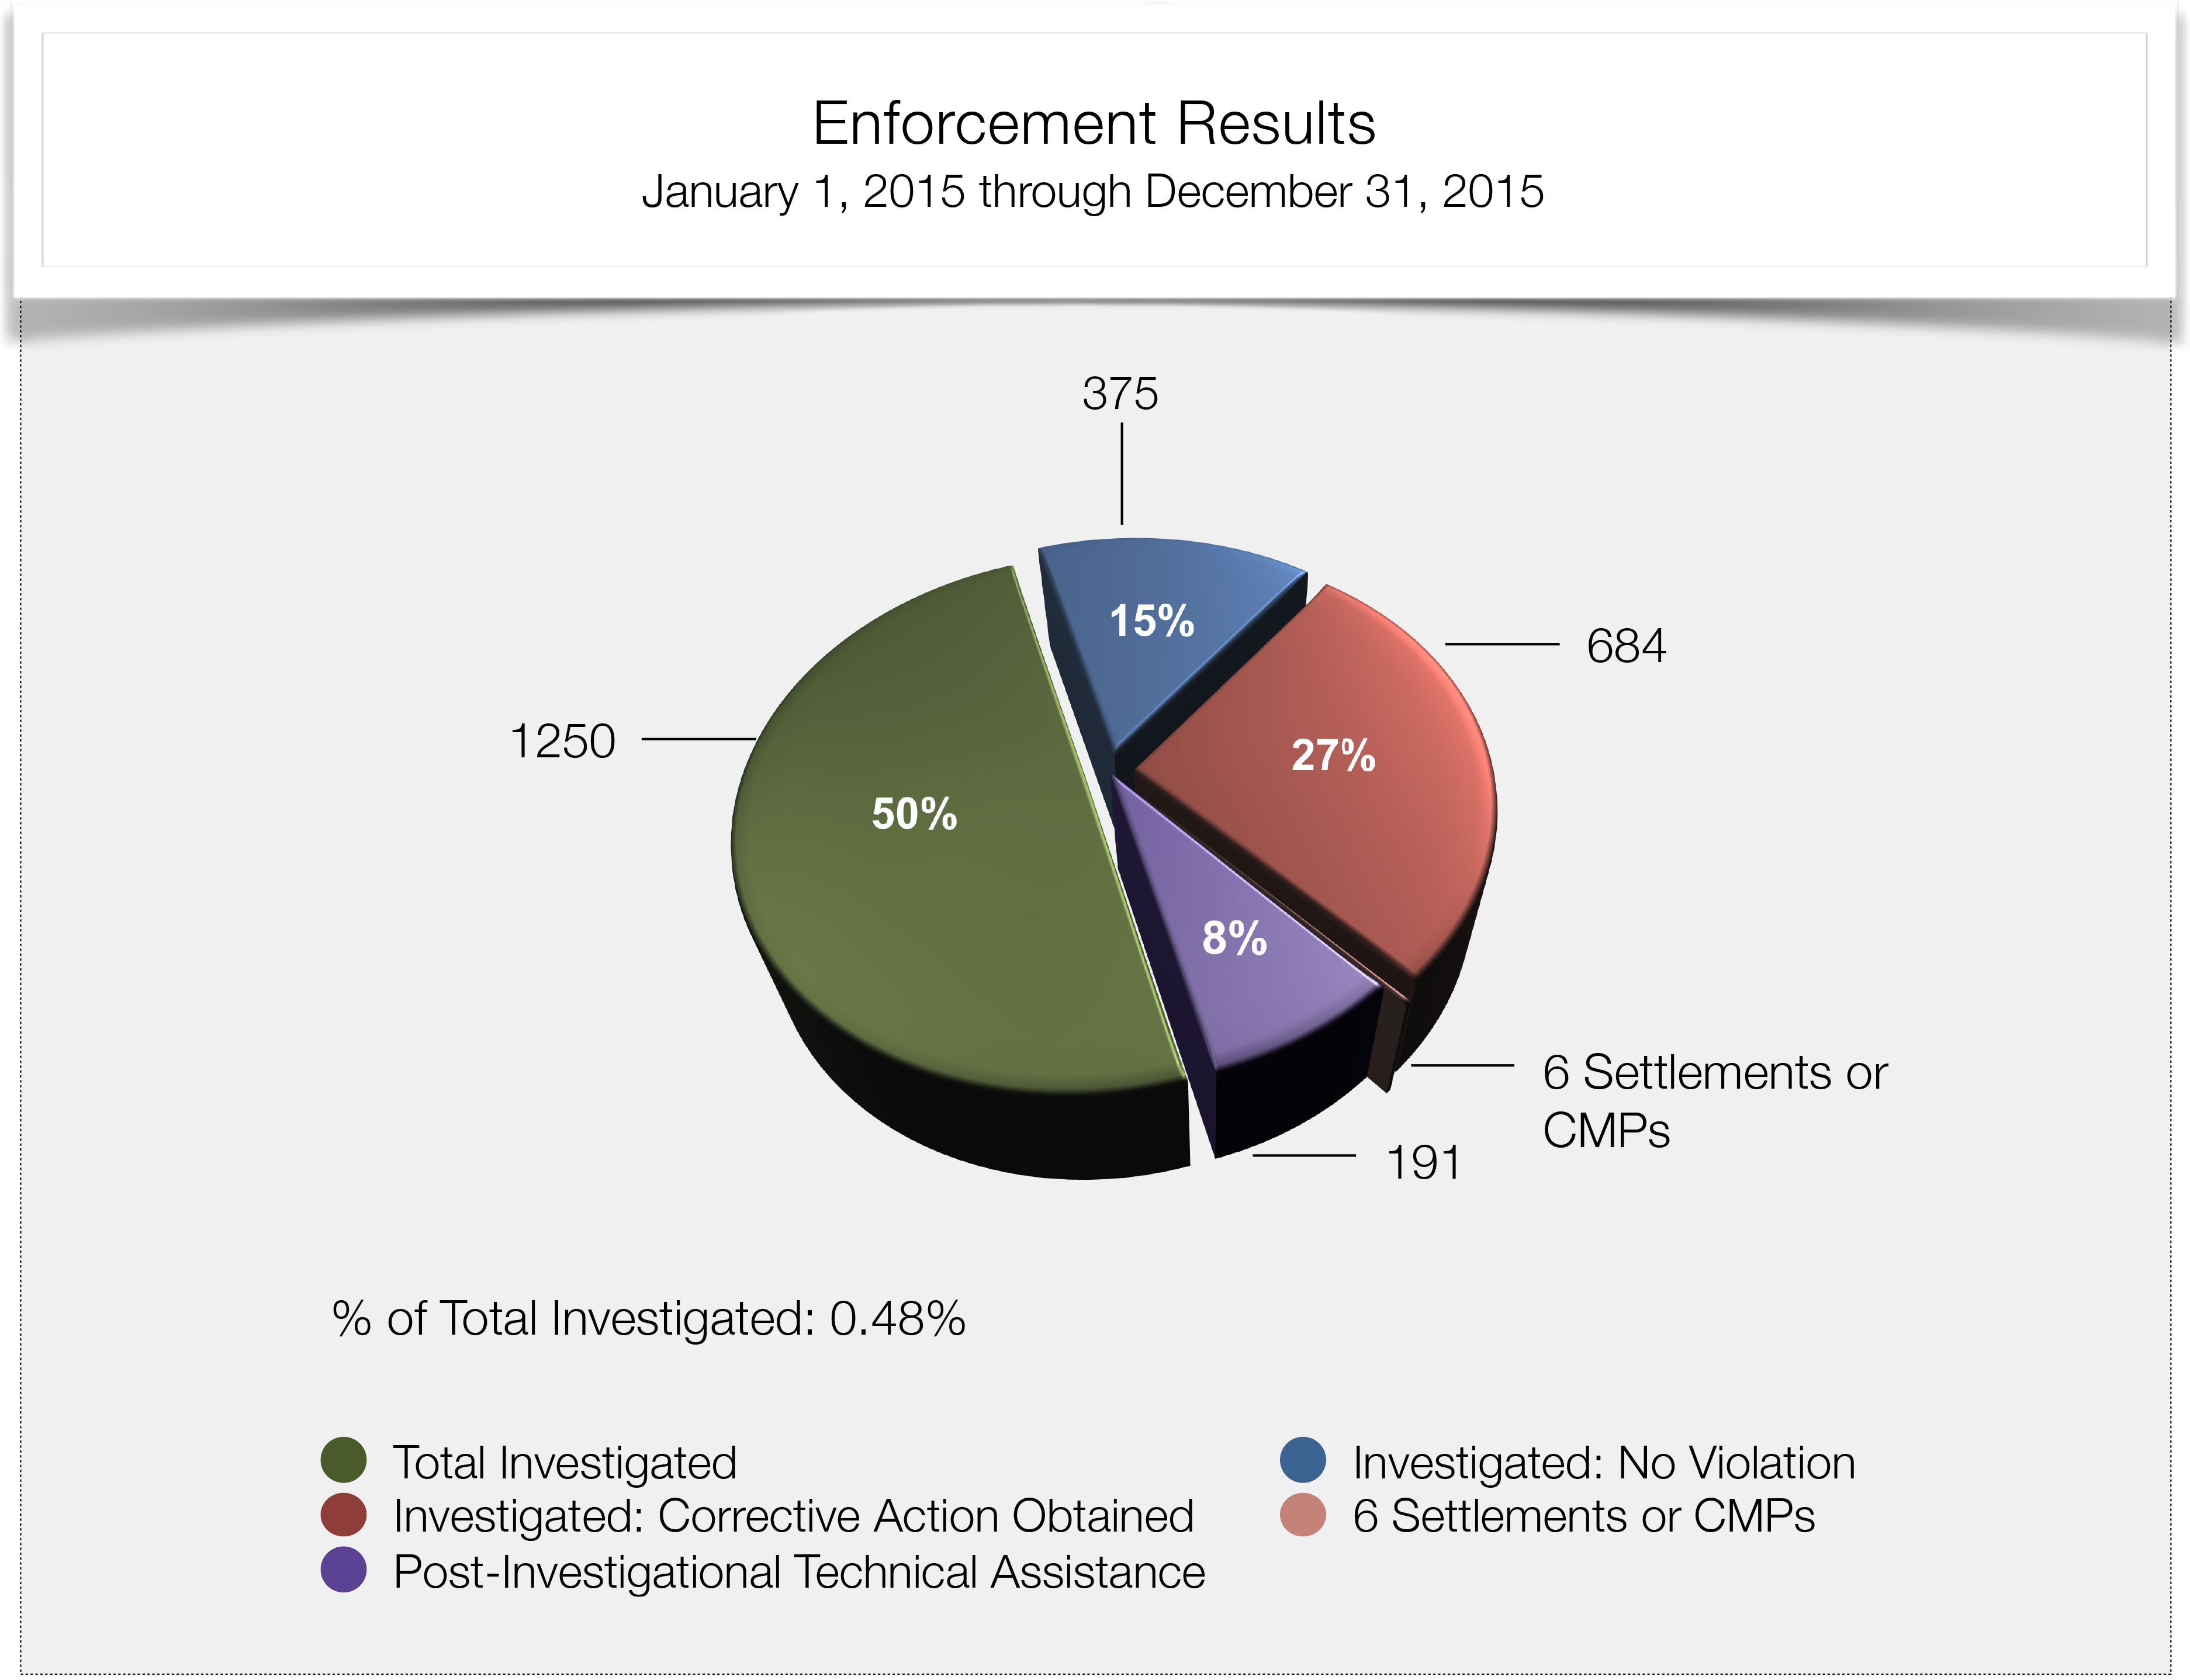 Total Cases Investigated 2015